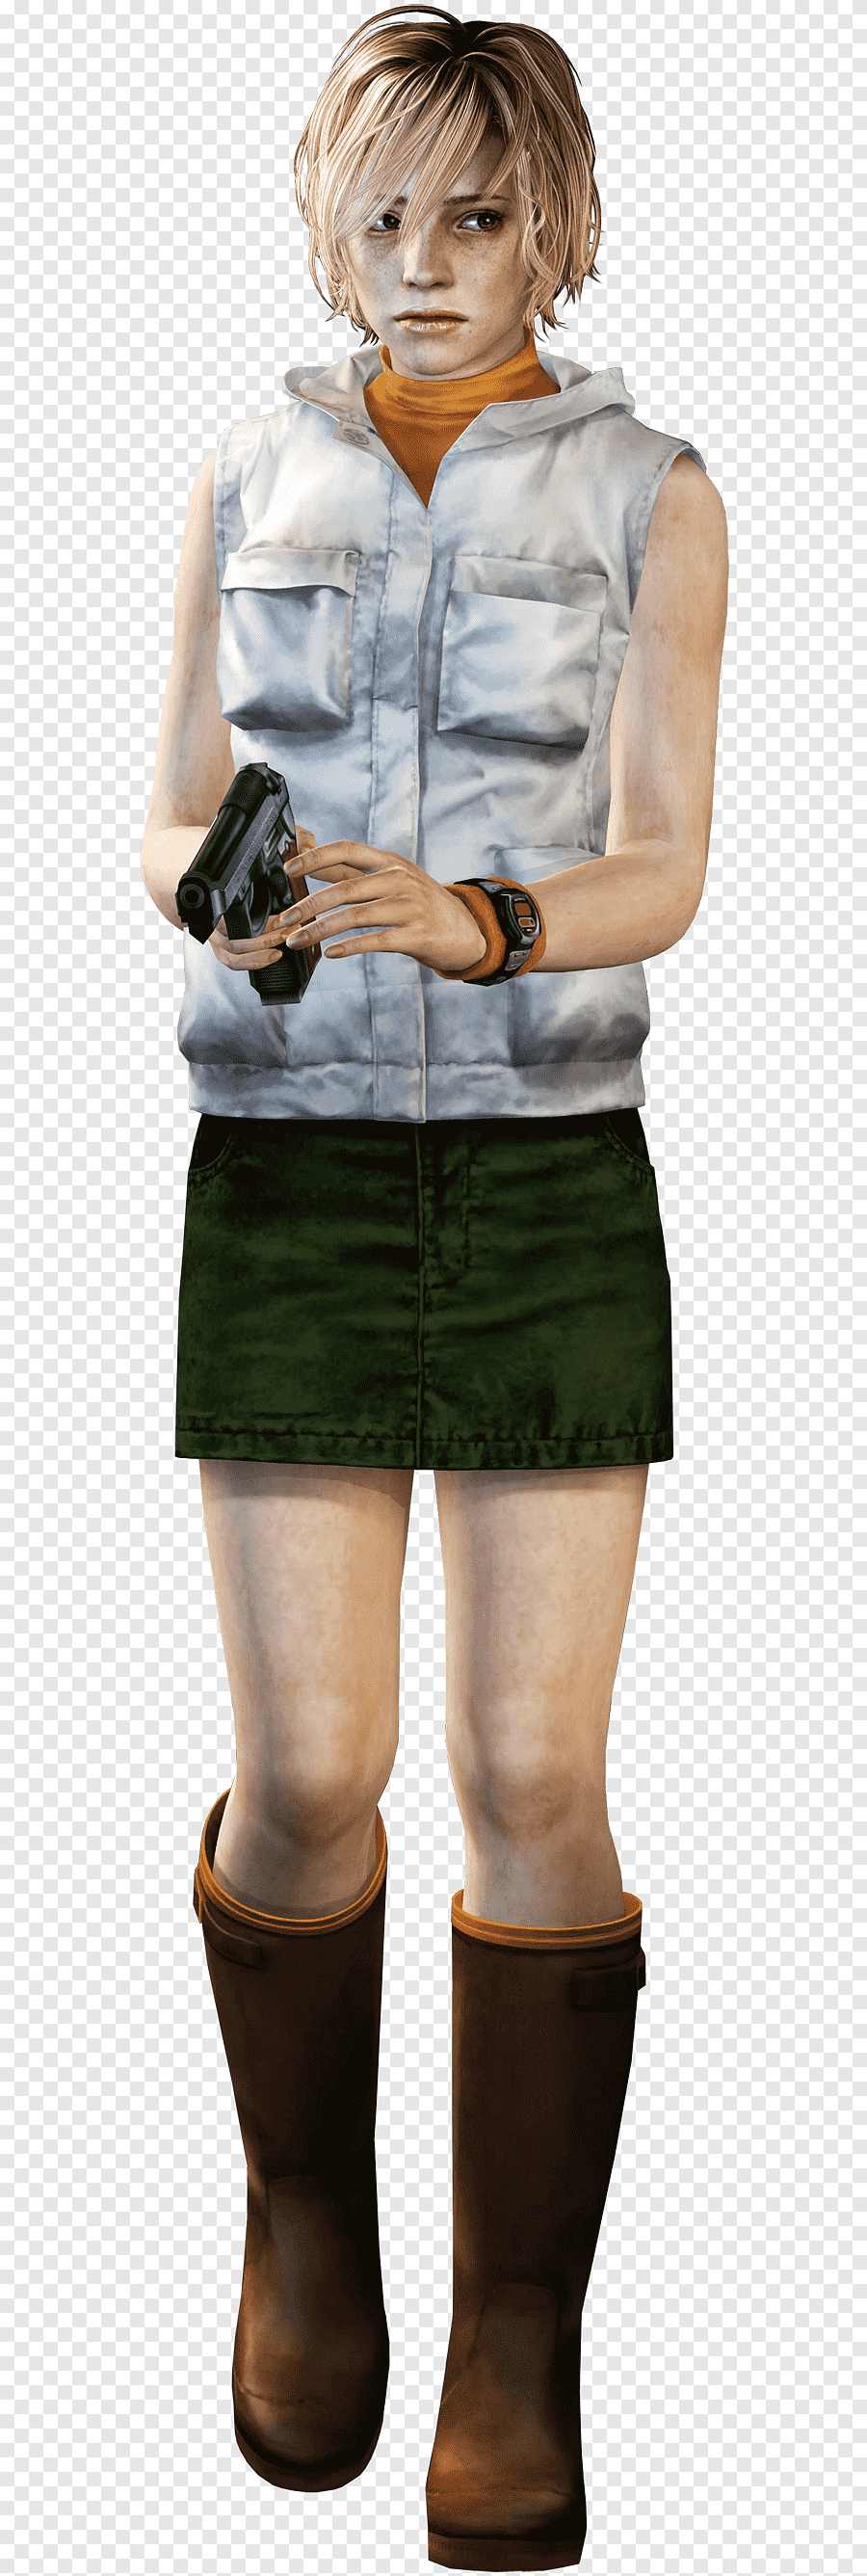 Silent Hill 3 Heather Mason Silent Hill 2 Alessa Gillespie Silent Miscellaneous Video Game Png Heather Mason Silent Hill 2 Silent Hill